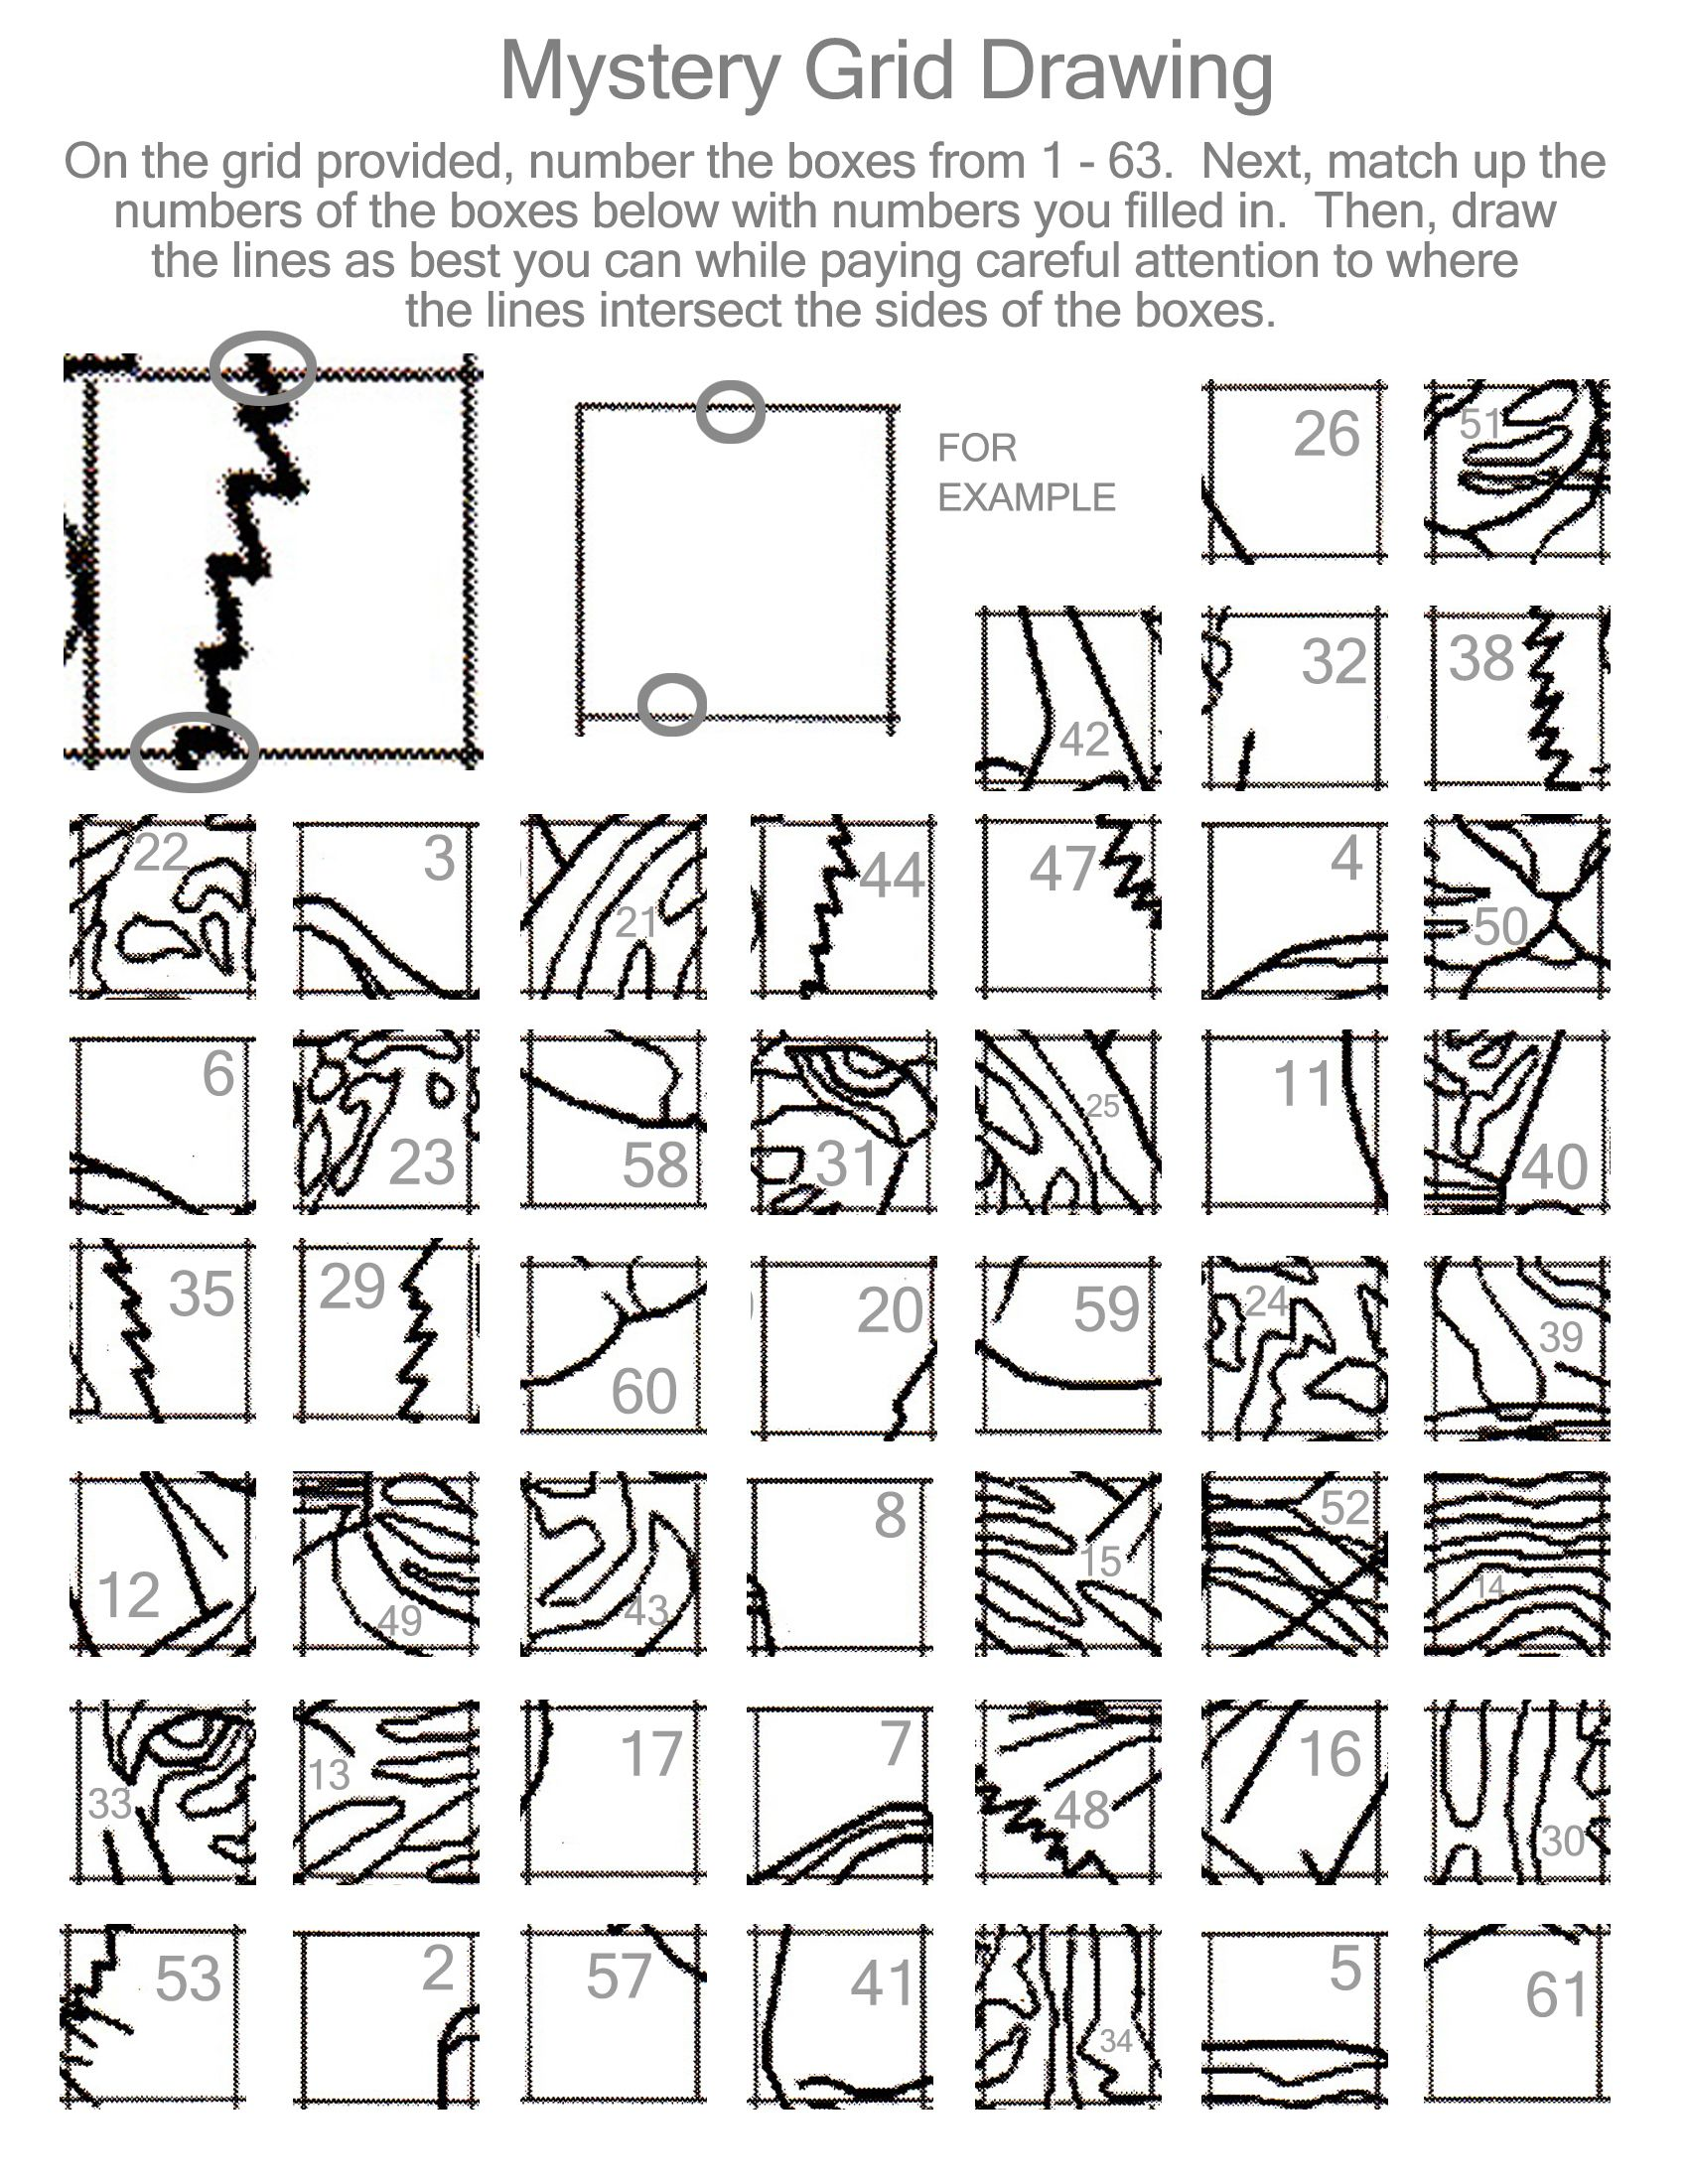 Line Drawing Worksheet : Printable mystery grid drawing pictures to pin on